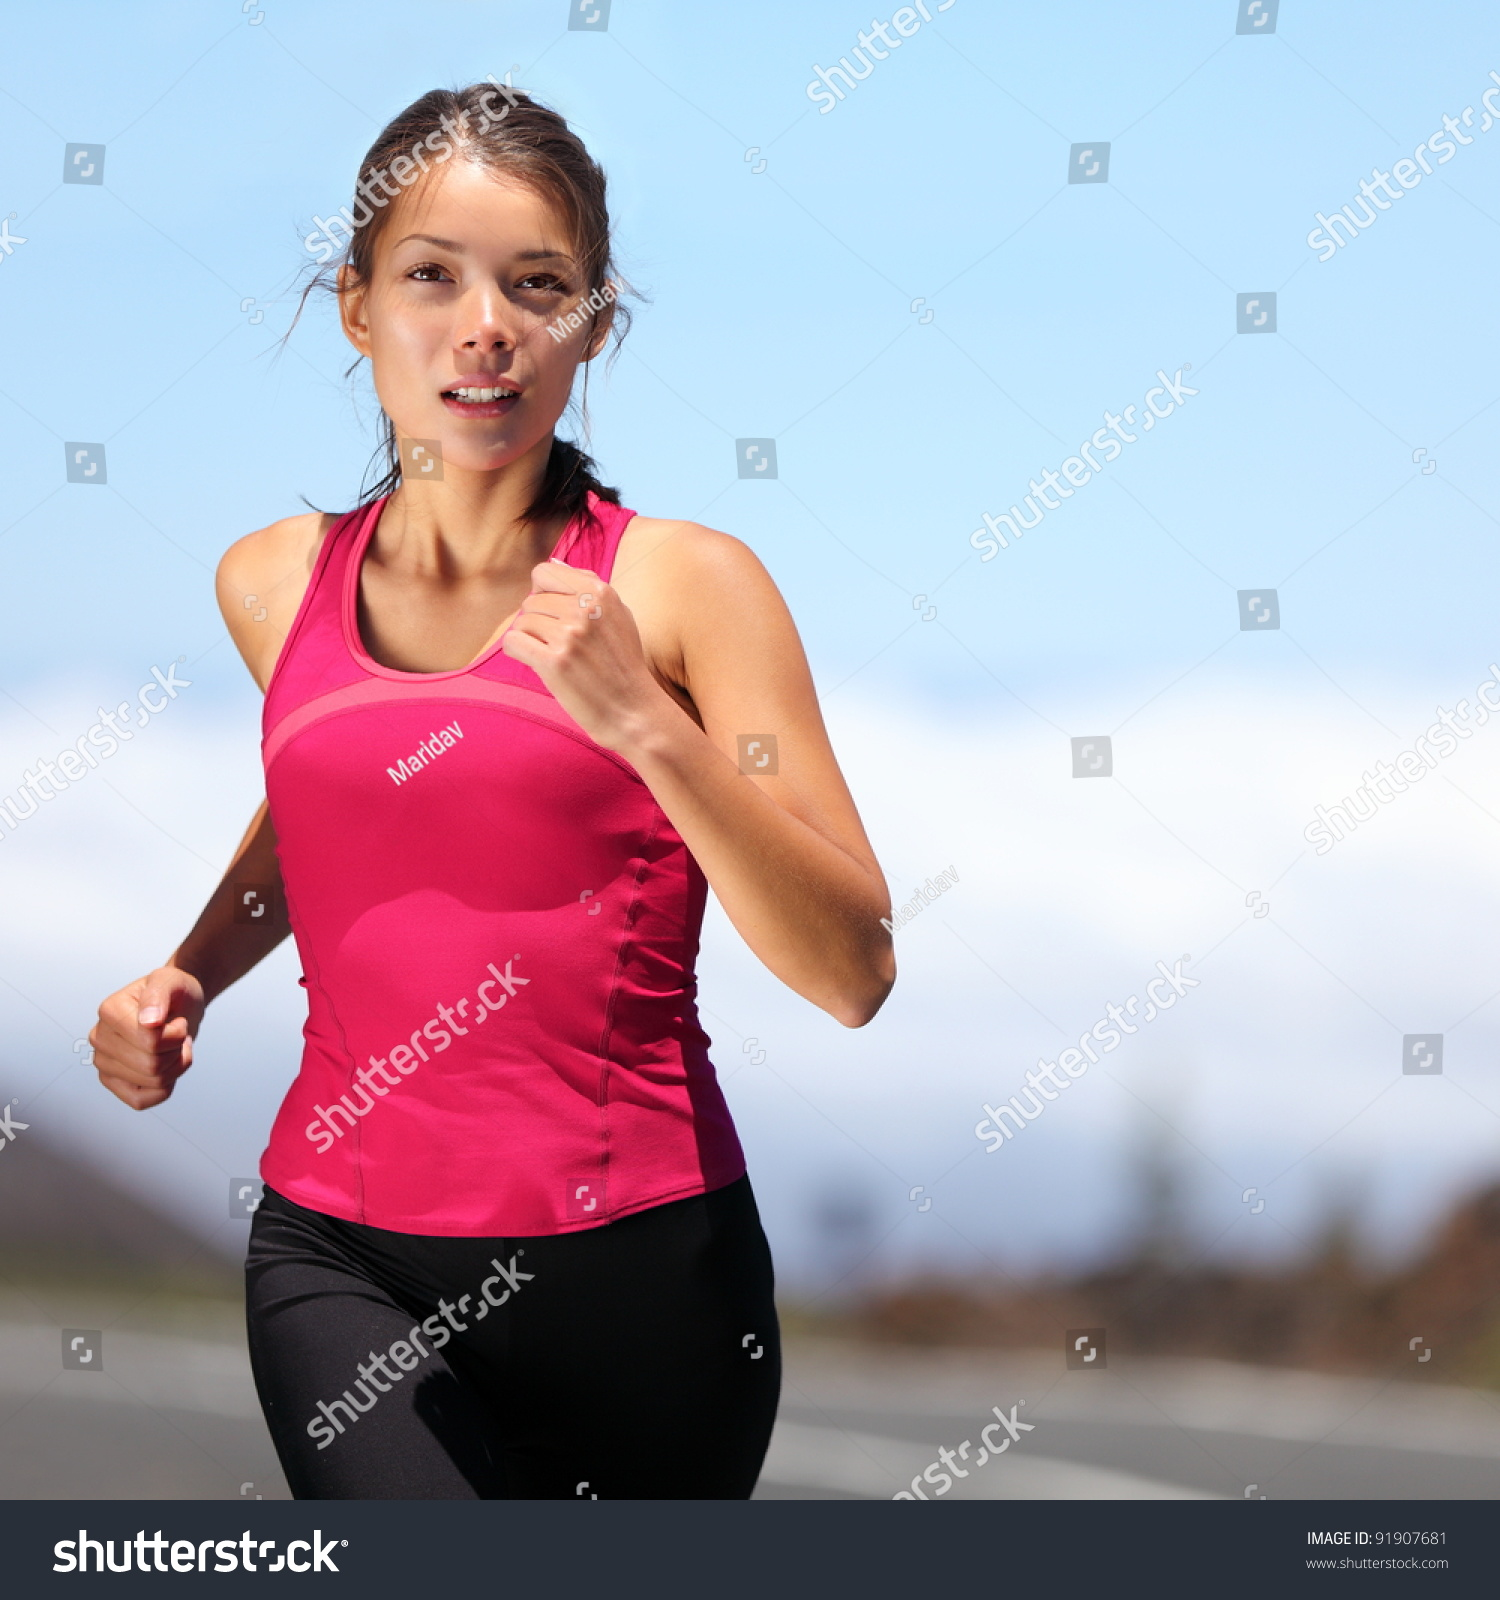 runner woman running outdoors training marathon stock